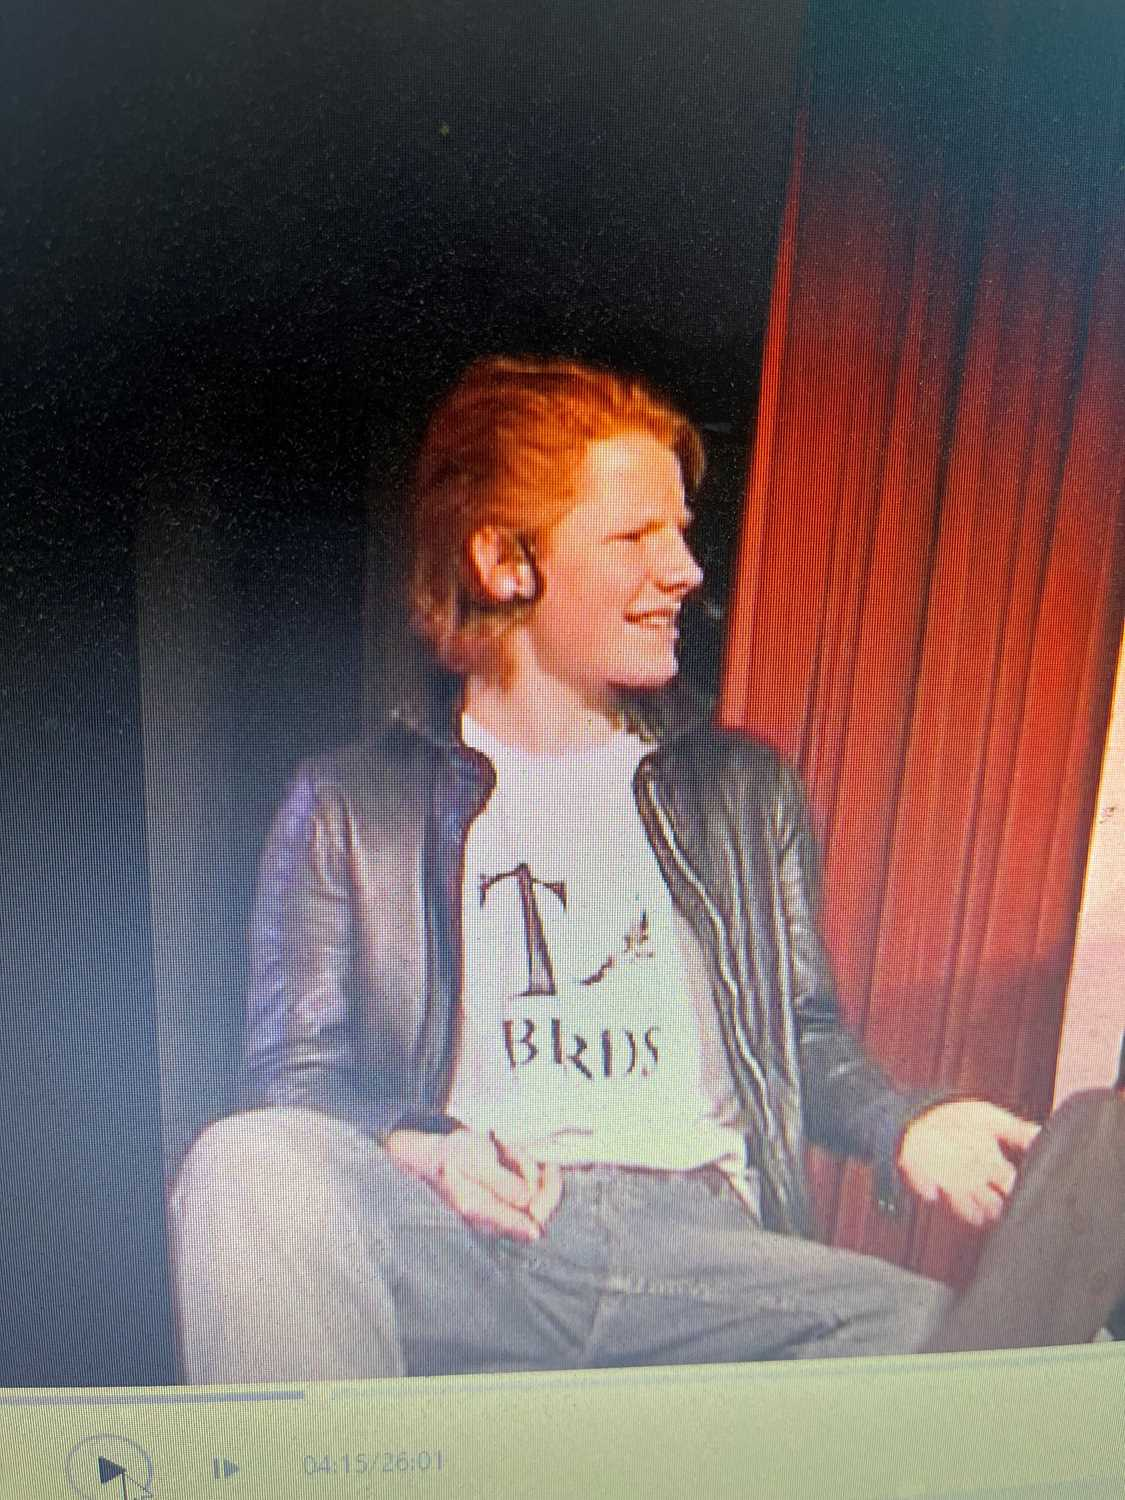 DVD FEATURING ED SHEERAN'S PERFORMANCE IN GREASE SCHOOL MUSICAL. - Image 3 of 4